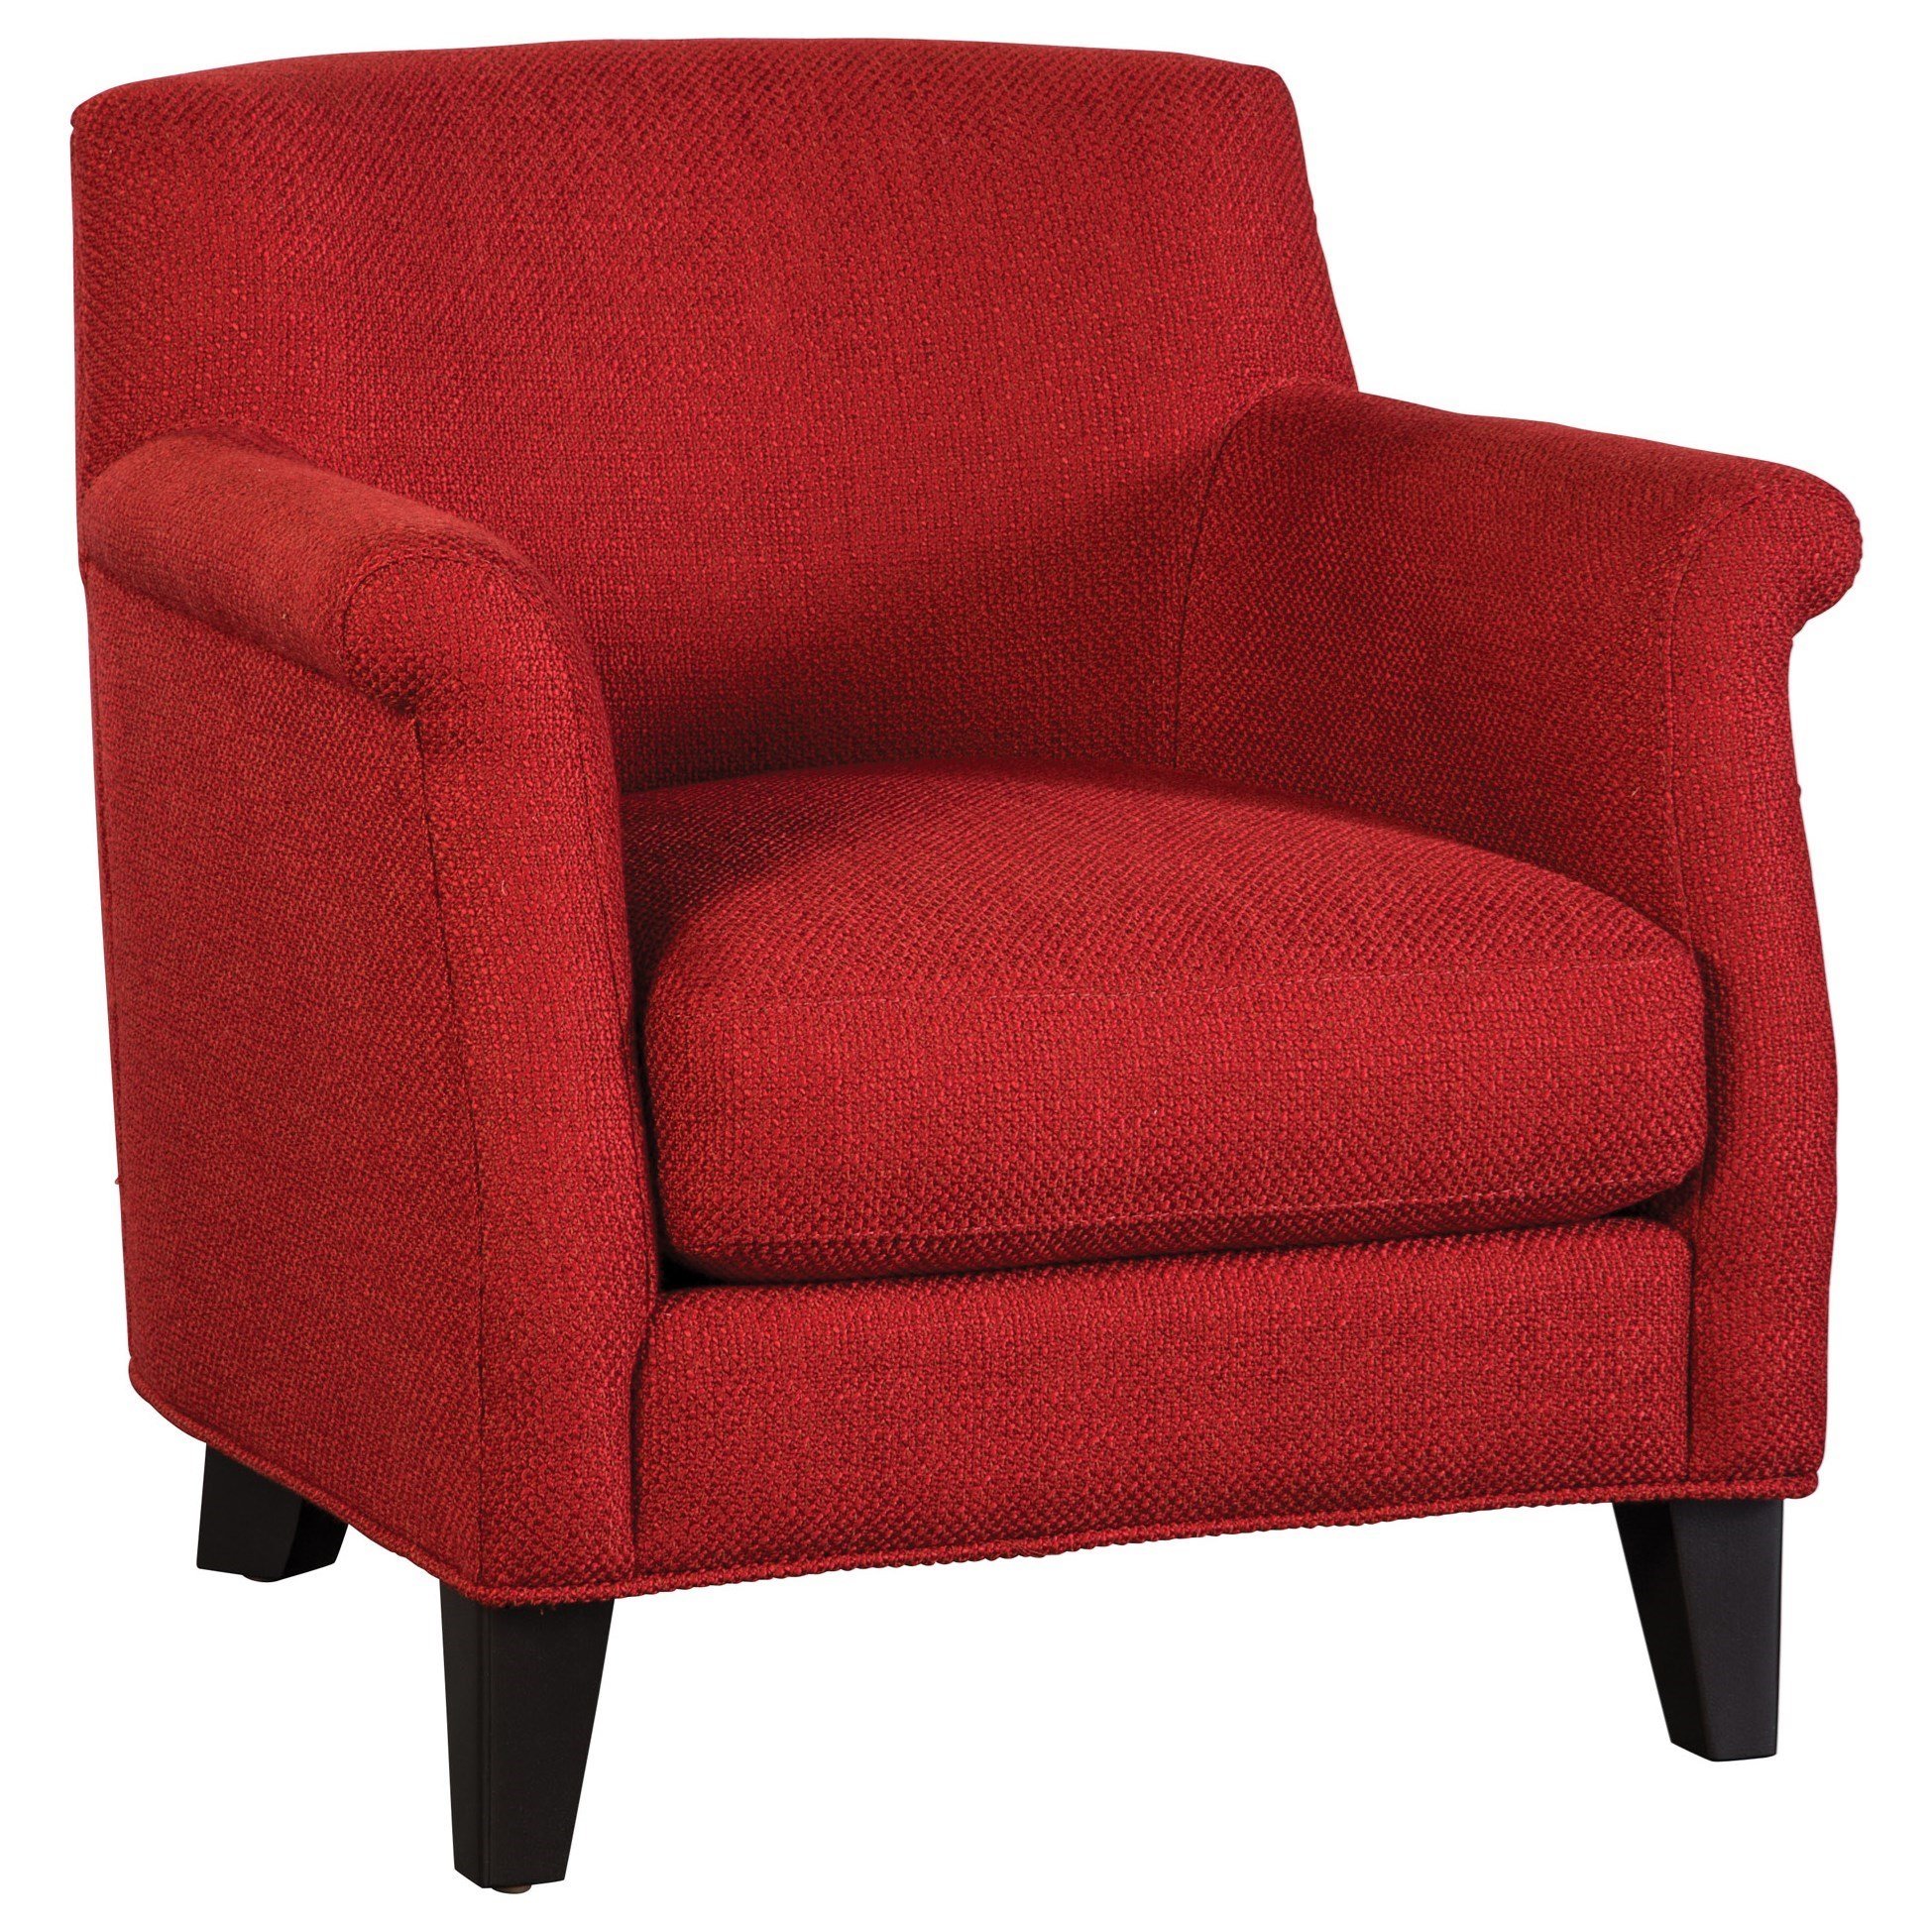 Cobi Accent Chair by Jonathan Louis at Fashion Furniture